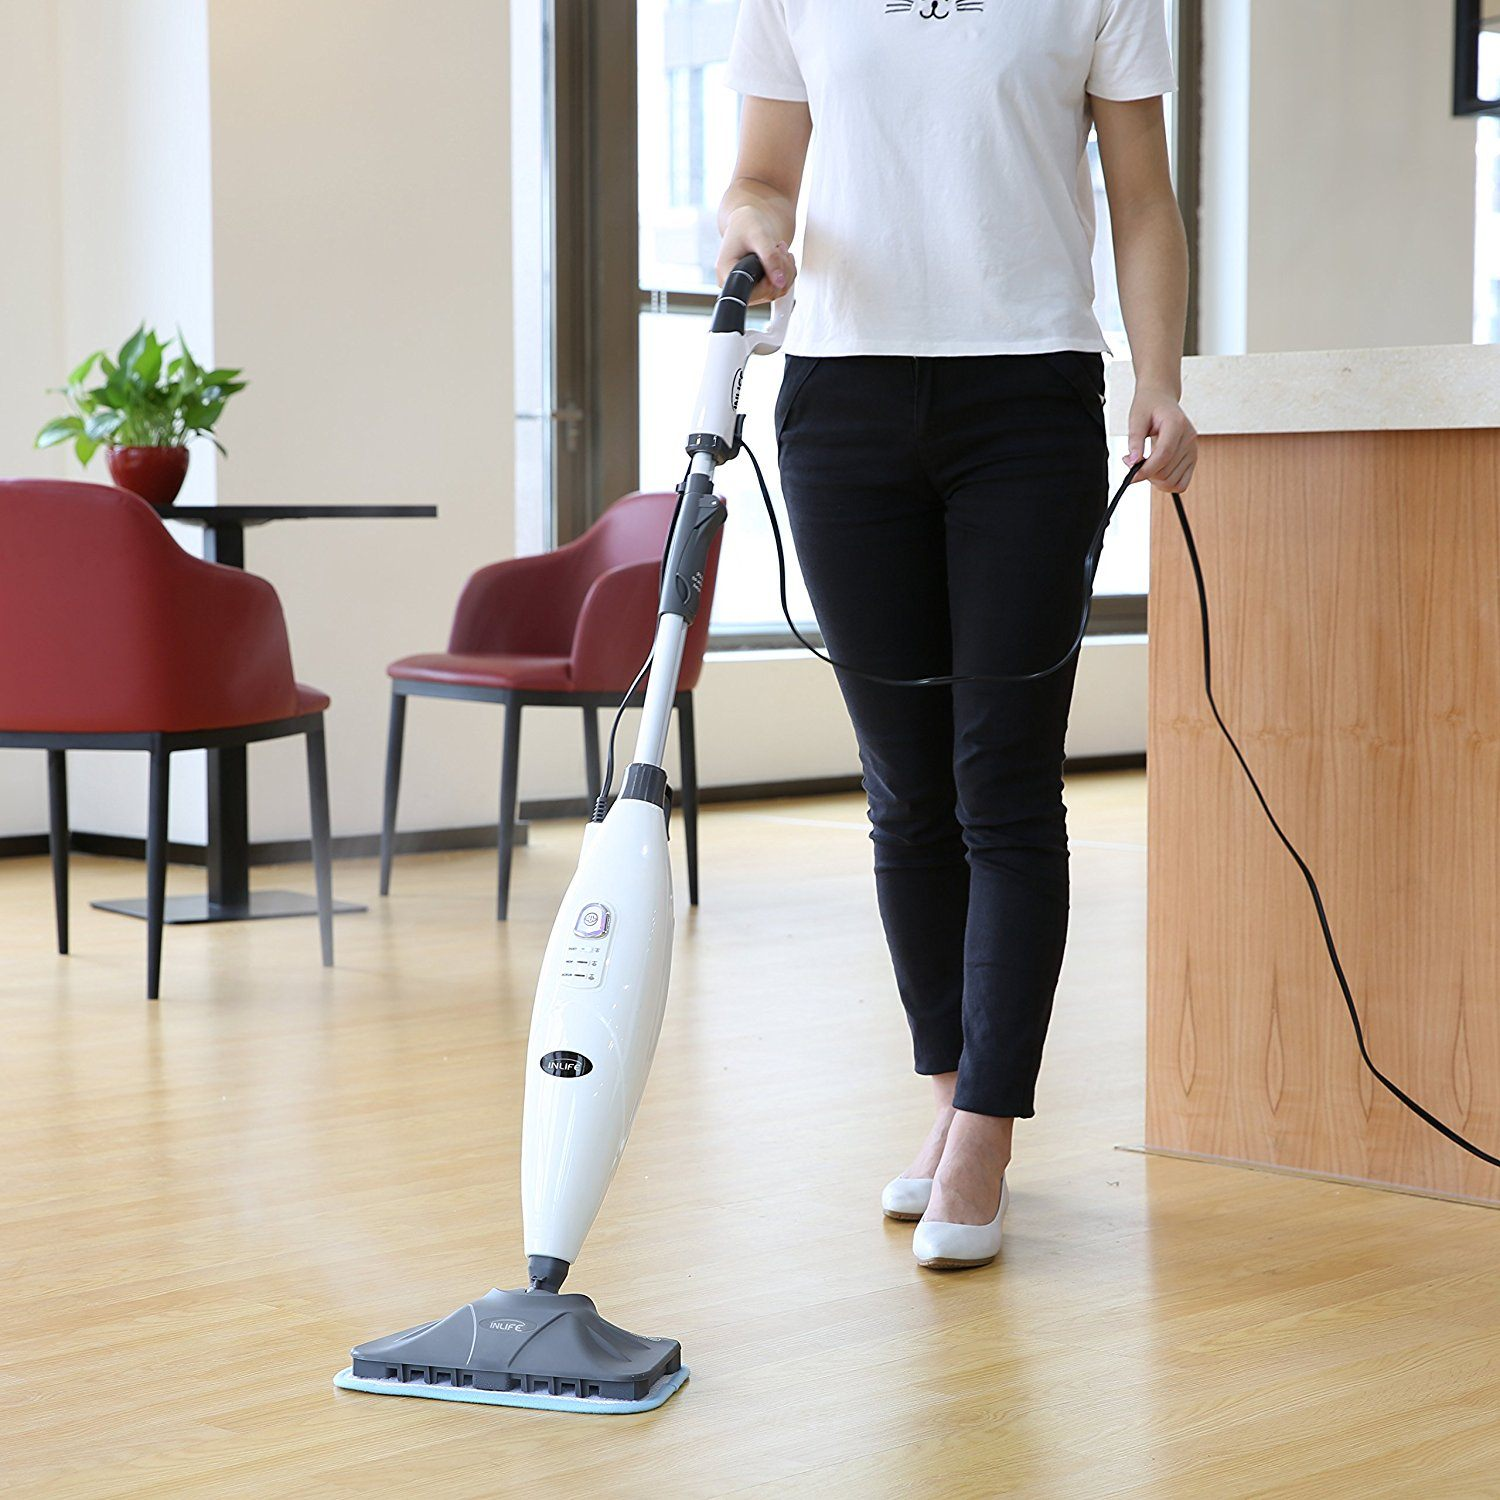 Best mop for tile how to clean tile grout floors homemade amazoncom dirt devil steam mop pioneer deh wiring harness best steam mop for tile and dailygadgetfo Choice Image